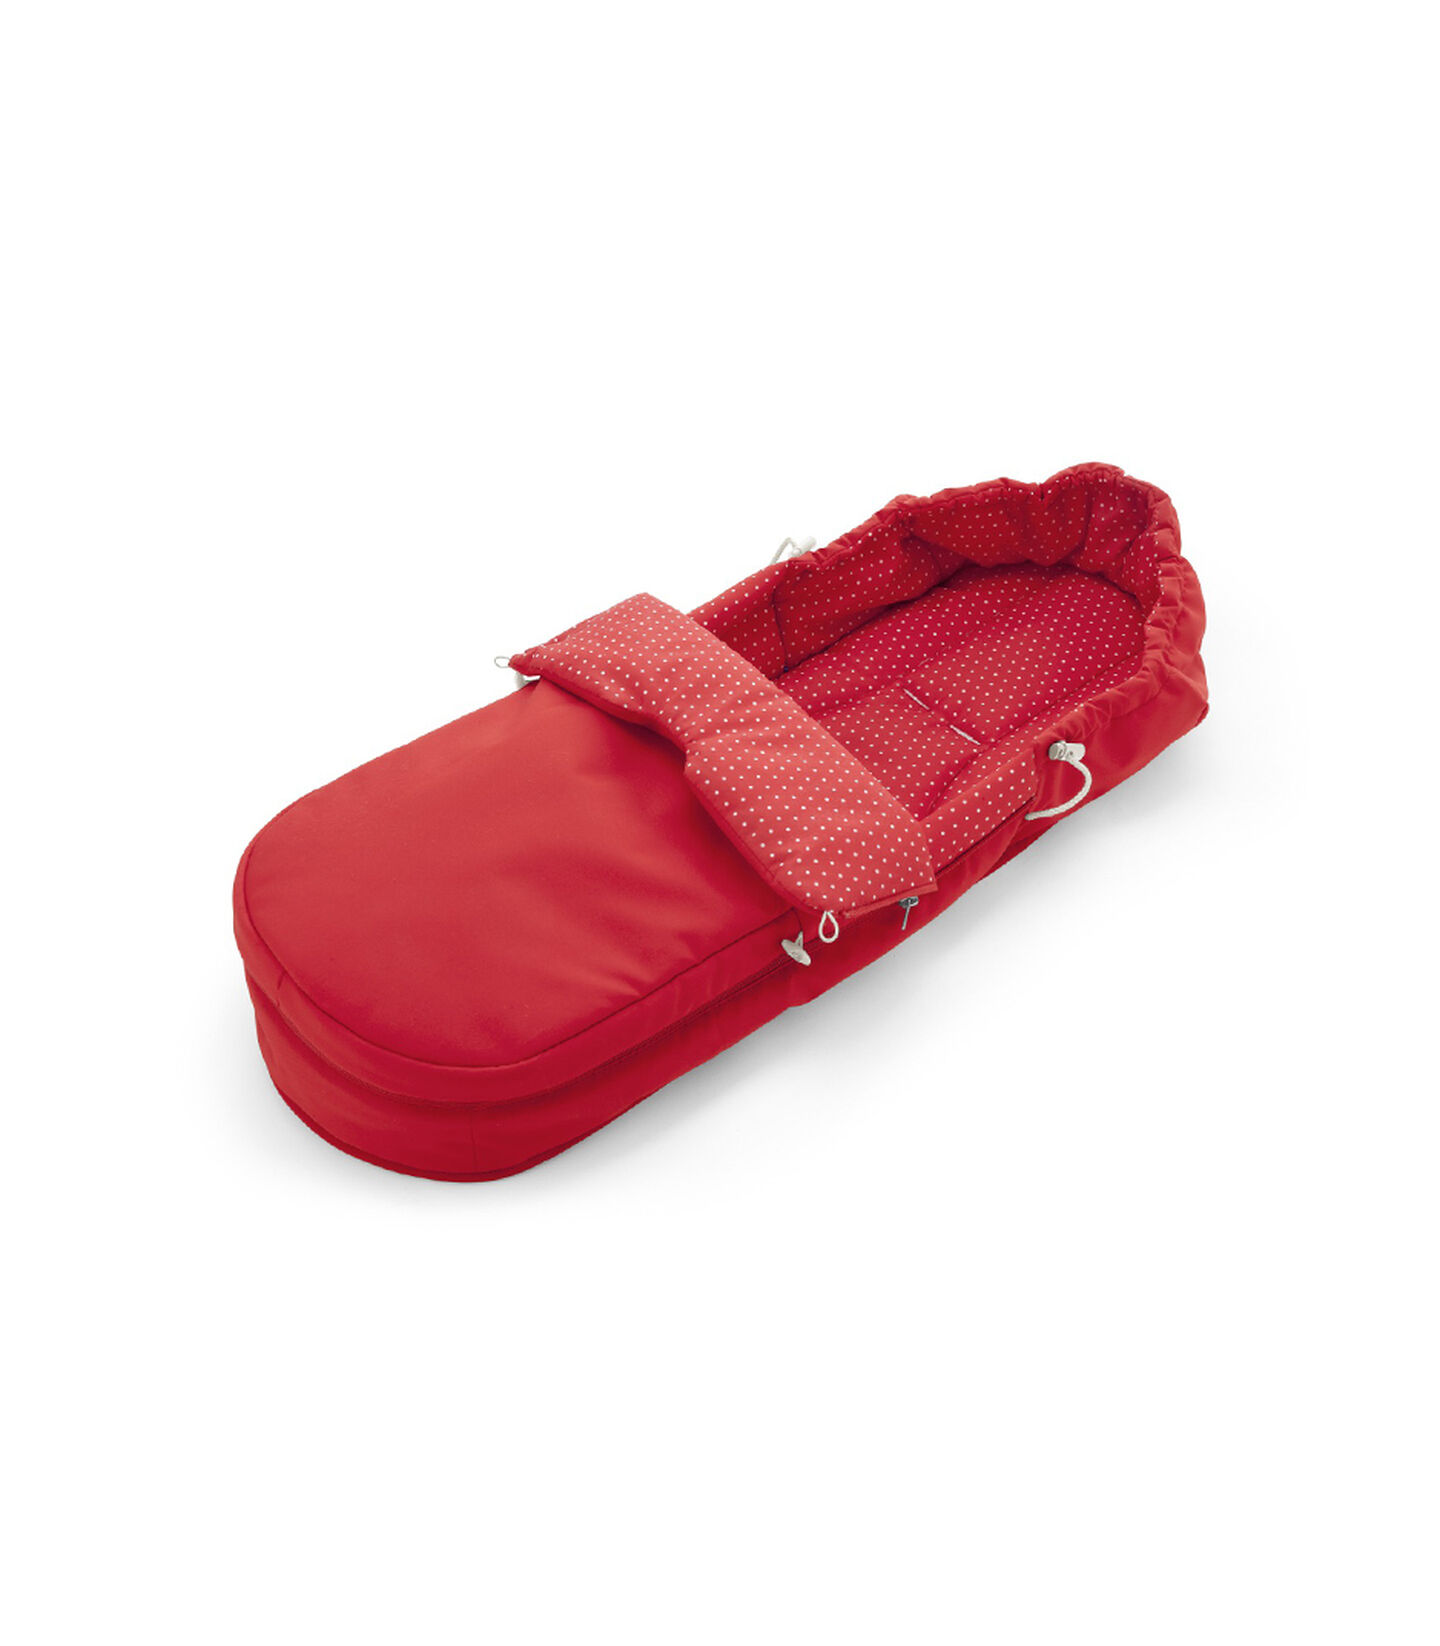 Accessories. Soft Bag, Red.